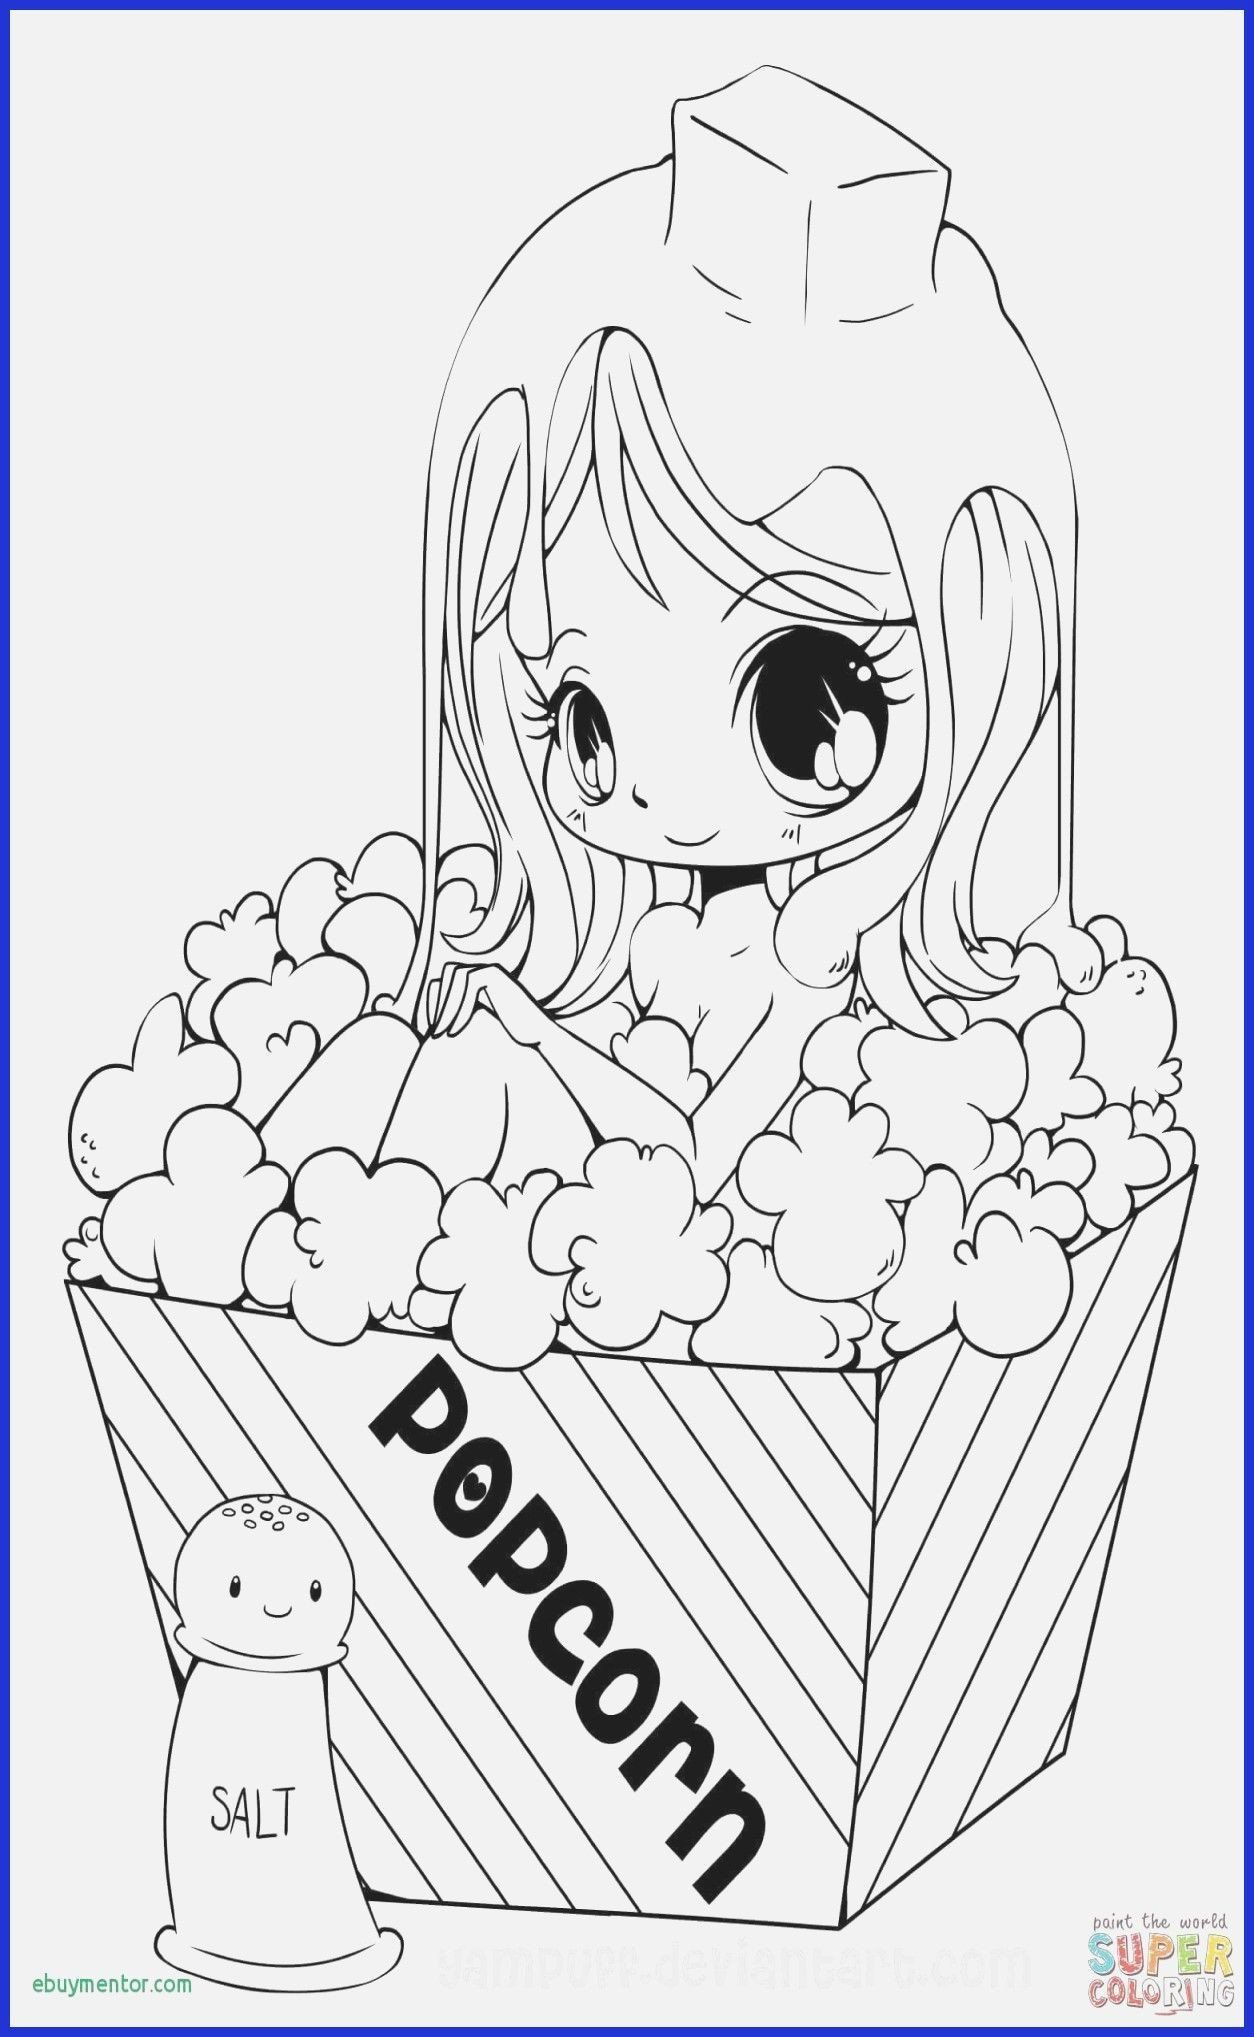 Girl Scout Coloring Pages Lovely Lovely Girl Model Coloring Page Nocn Chibi Coloring Pages Princess Coloring Pages Witch Coloring Pages